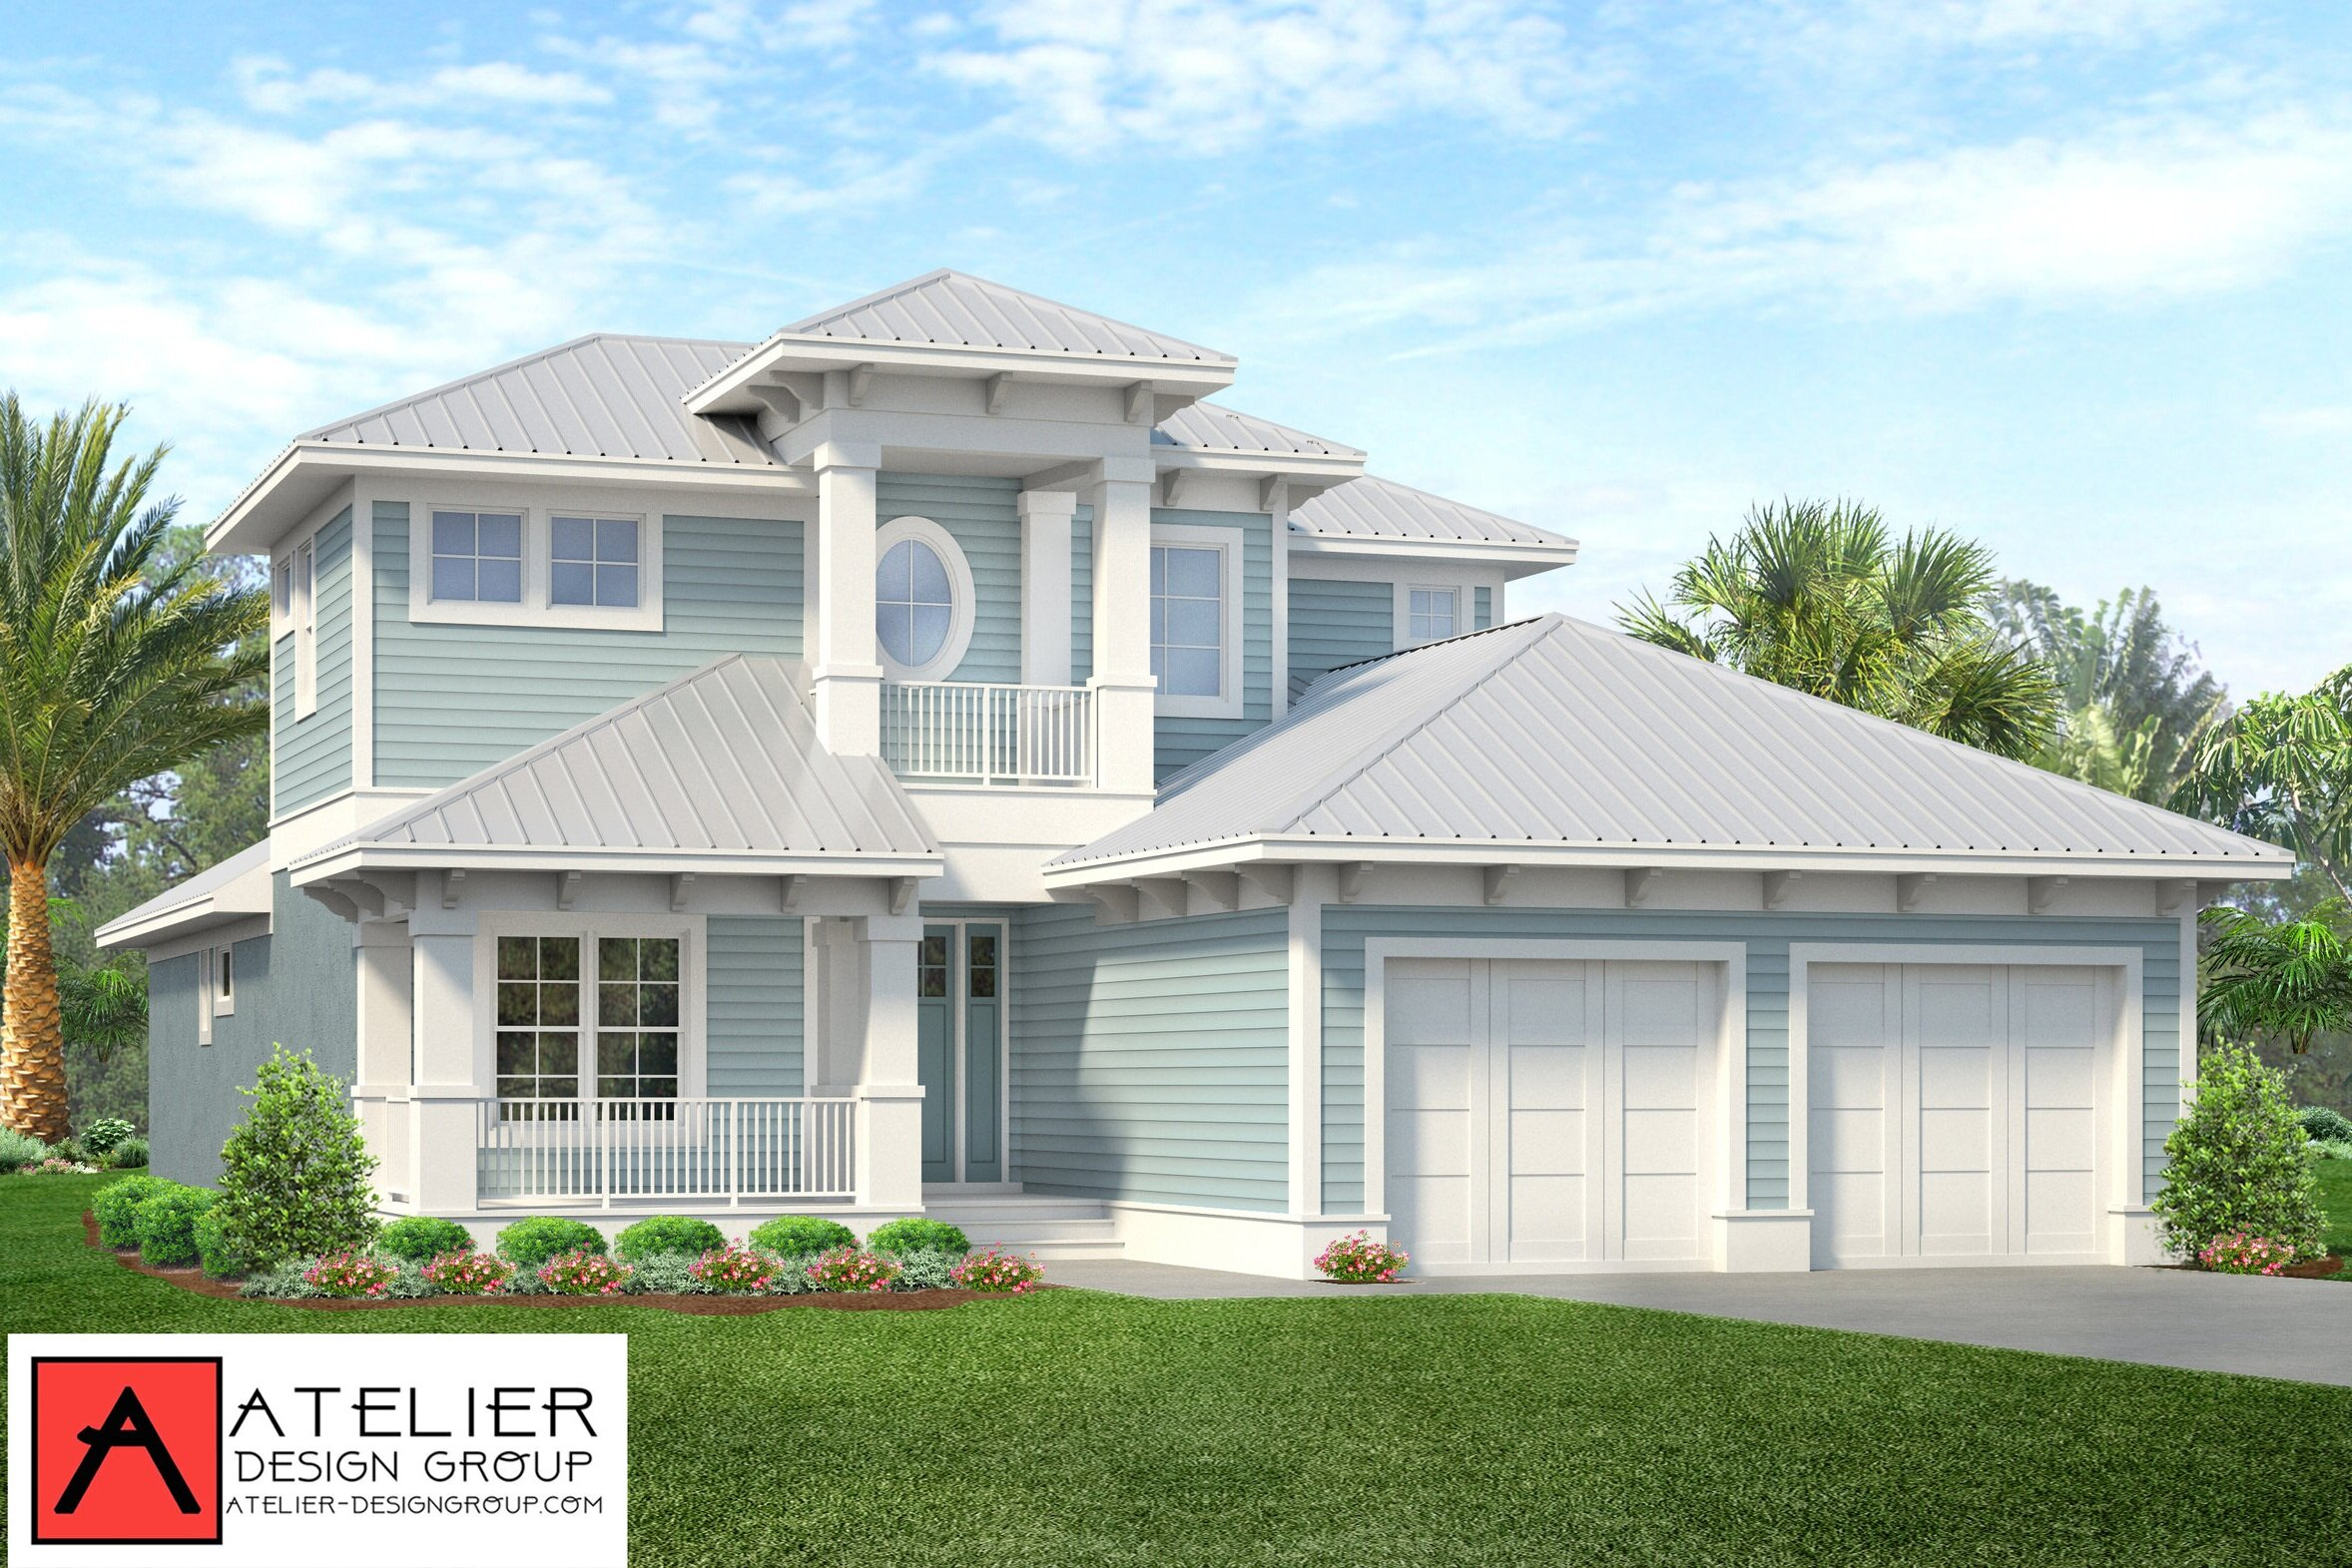 Atelier Design Group are the designers for this Classy Coastal Residence coming to the Bulow Shores - Seaside Landings area of Palm Coast, FL. We have mixed our beach style with the classical timeless design. Designed to last a life time. .In the permit process now. Construction photos to follow soon.